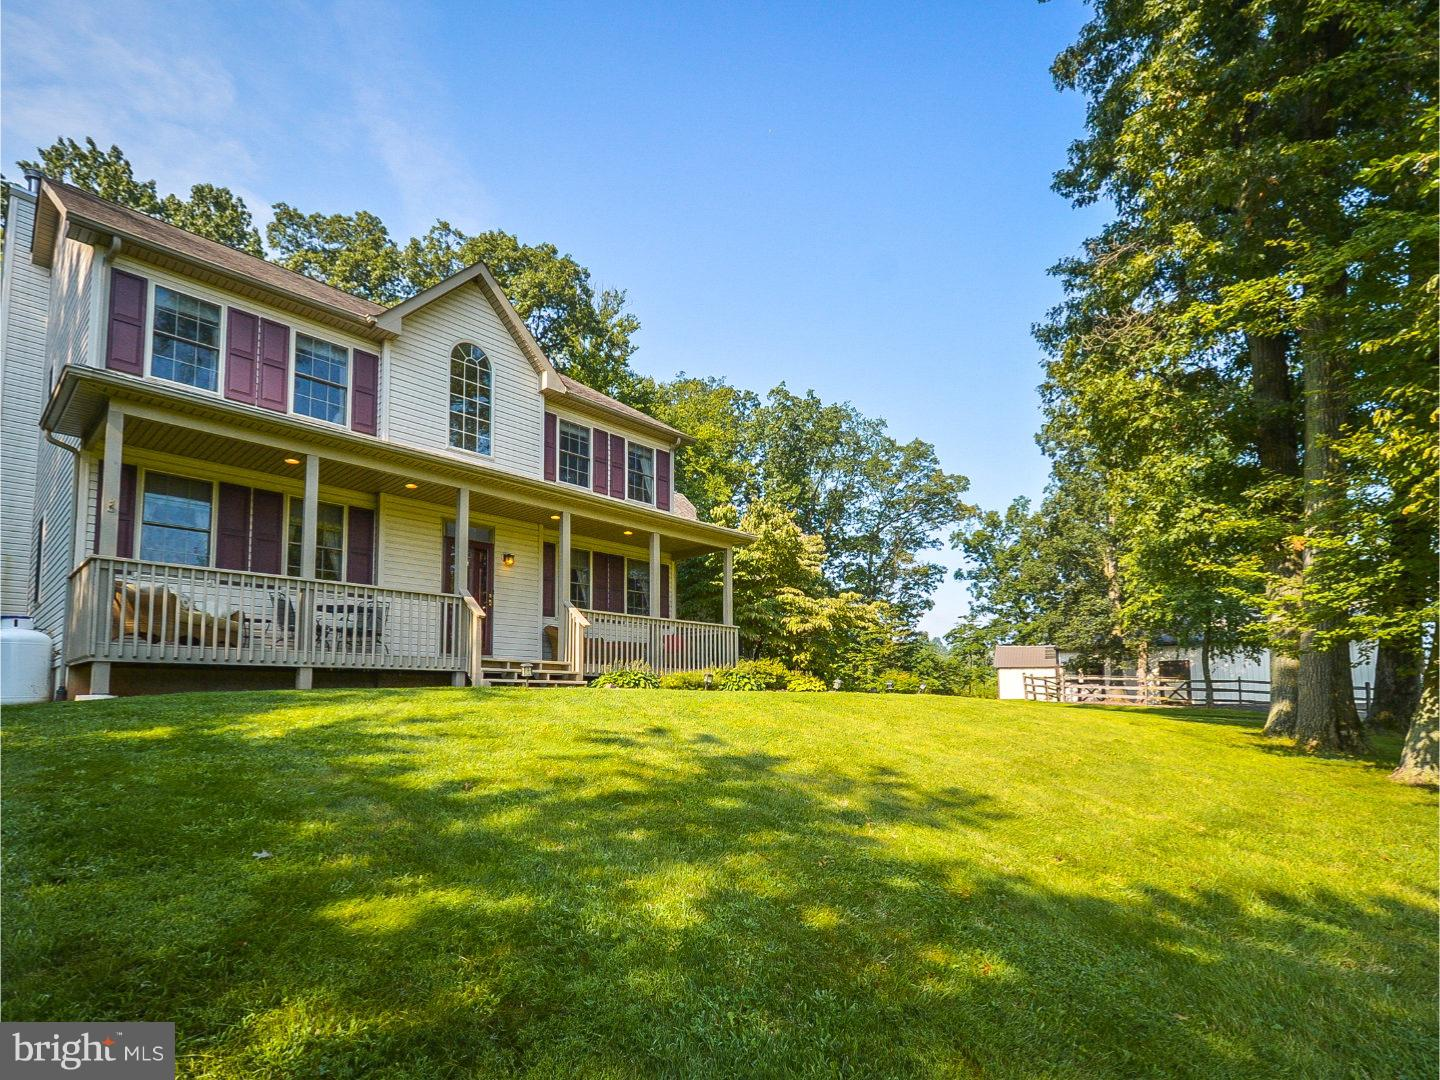 2368 Route 412 Hellertown, PA 18055